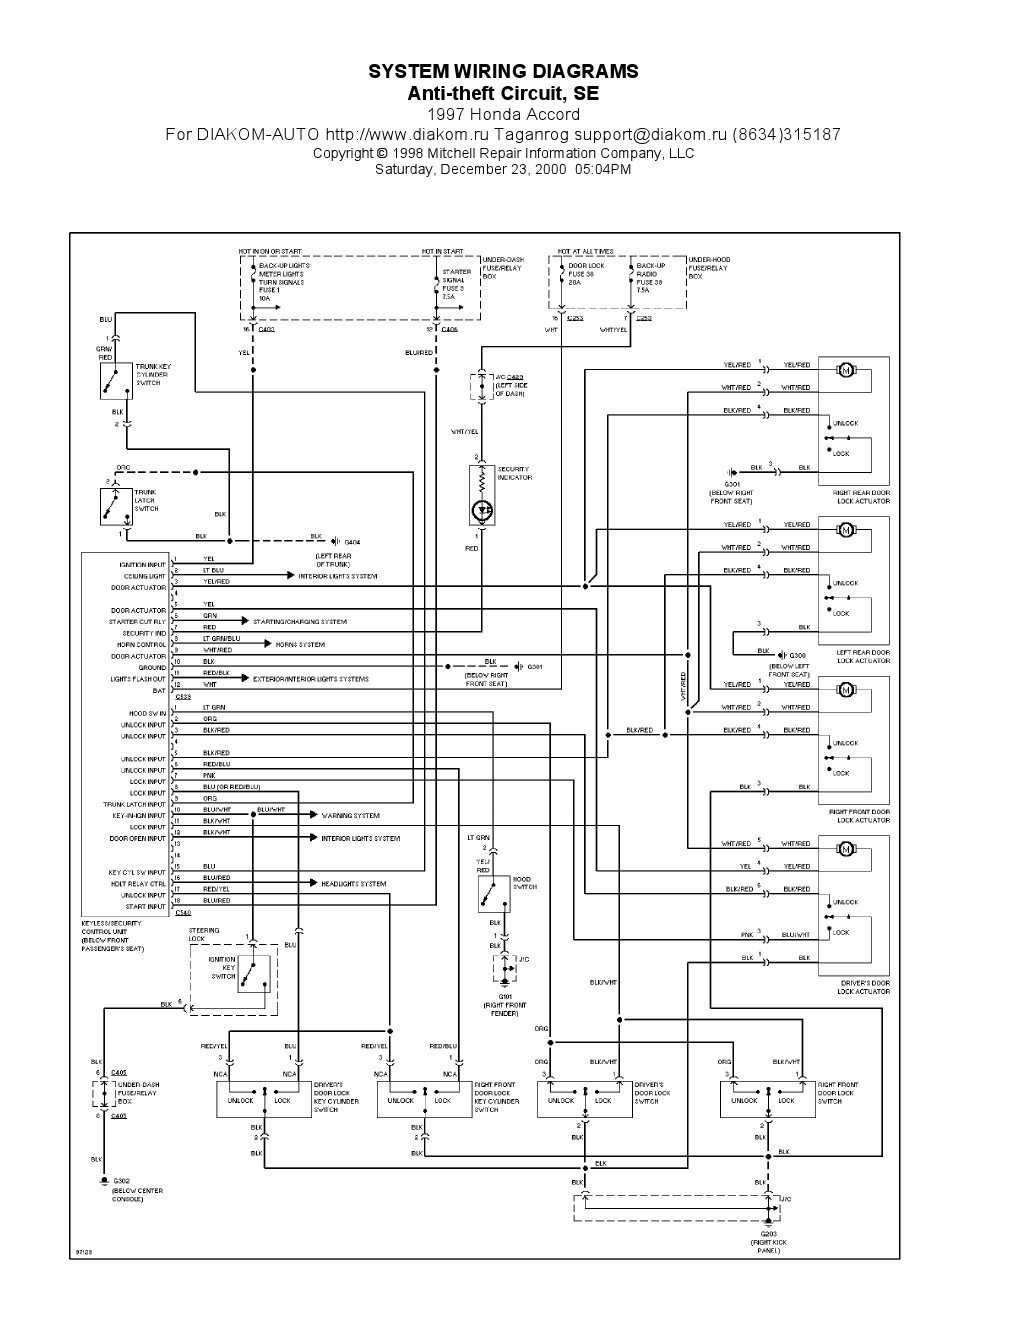 96 honda accord engine diagram sql server er tool wiring schematic 2001 vtec pio schullieder de u2022 1996 axle